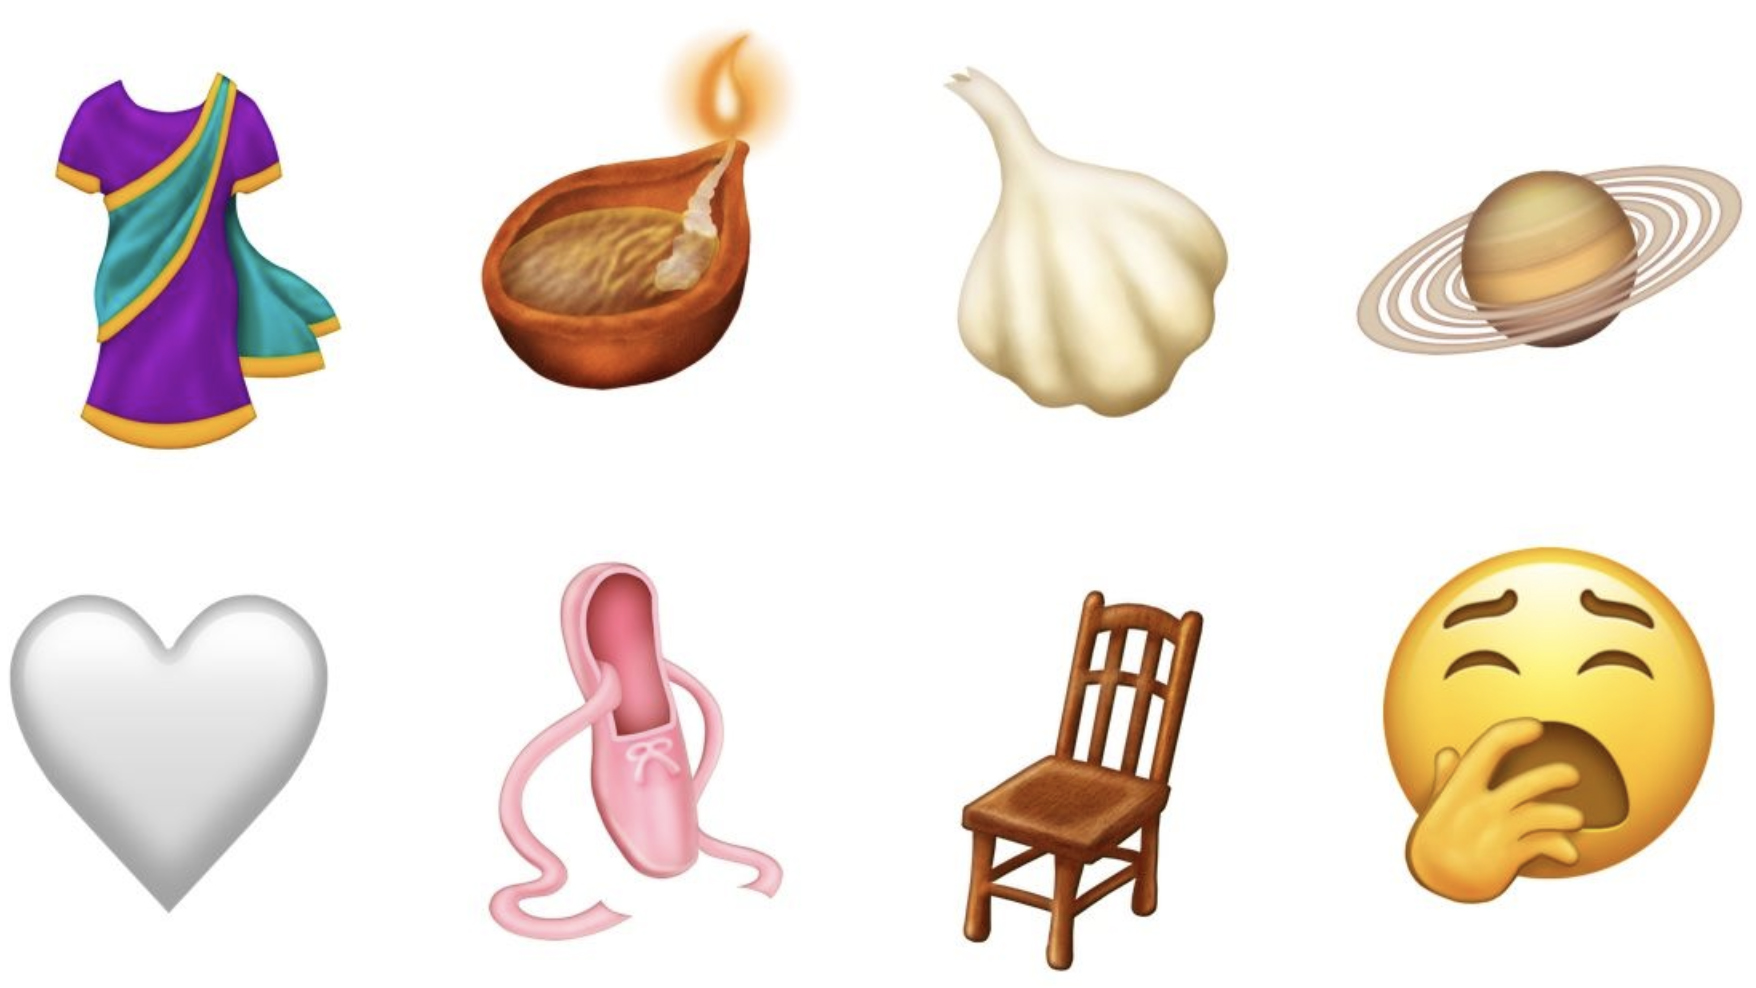 iOS 13 emoji update